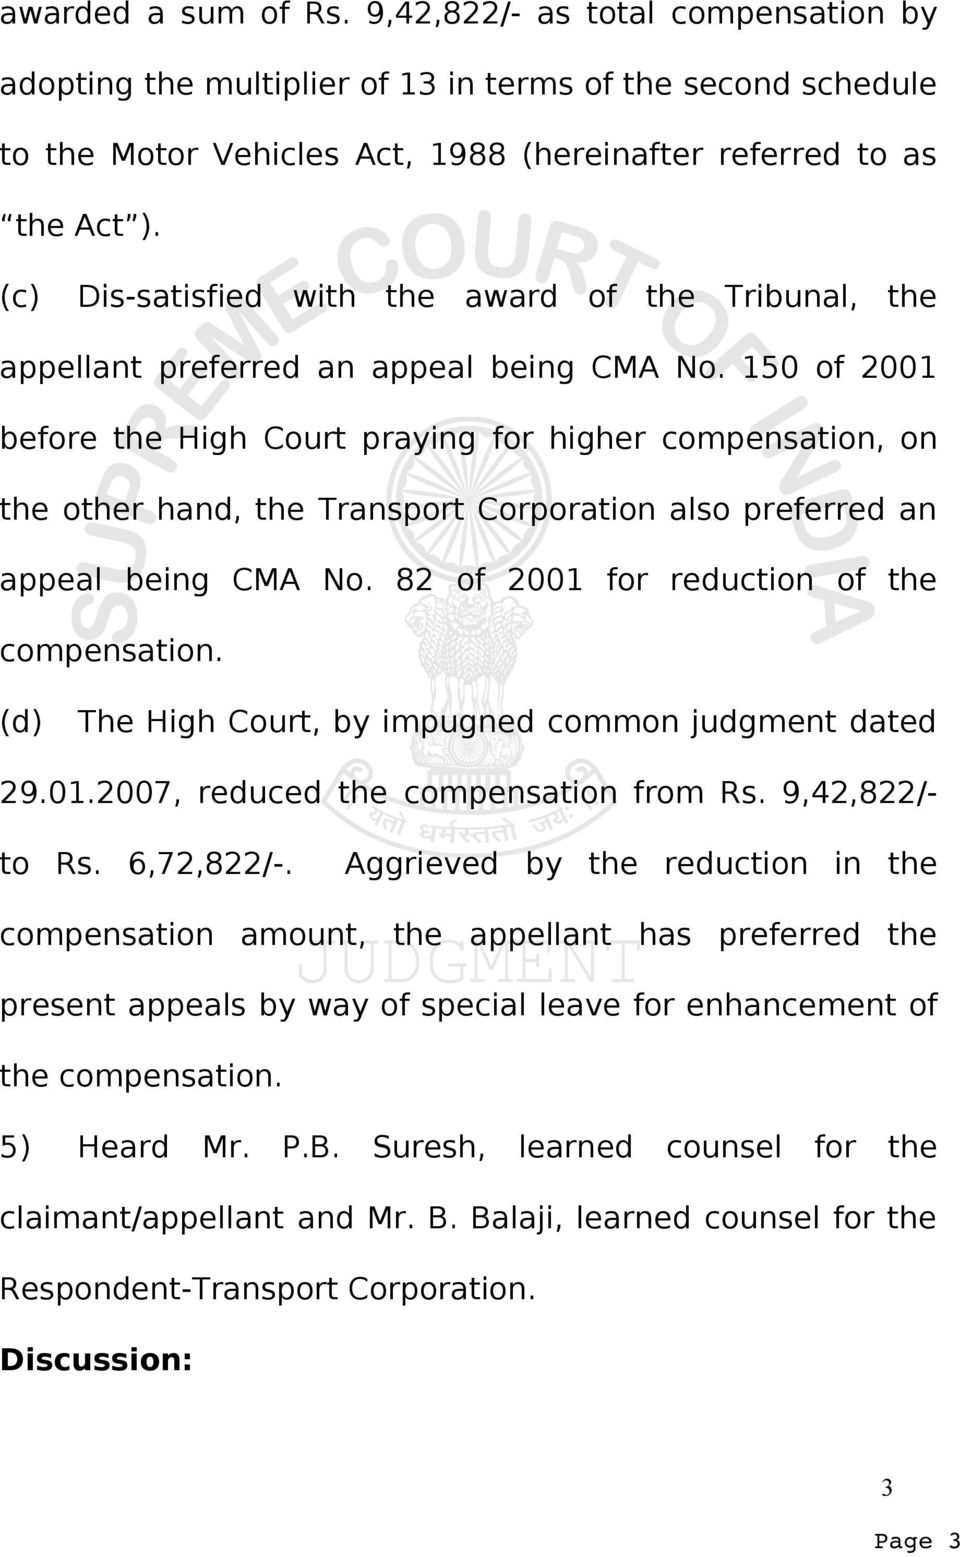 150 of 2001 before the High Court praying for higher compensation, on the other hand, the Transport Corporation also preferred an appeal being CMA No. 82 of 2001 for reduction of the compensation.